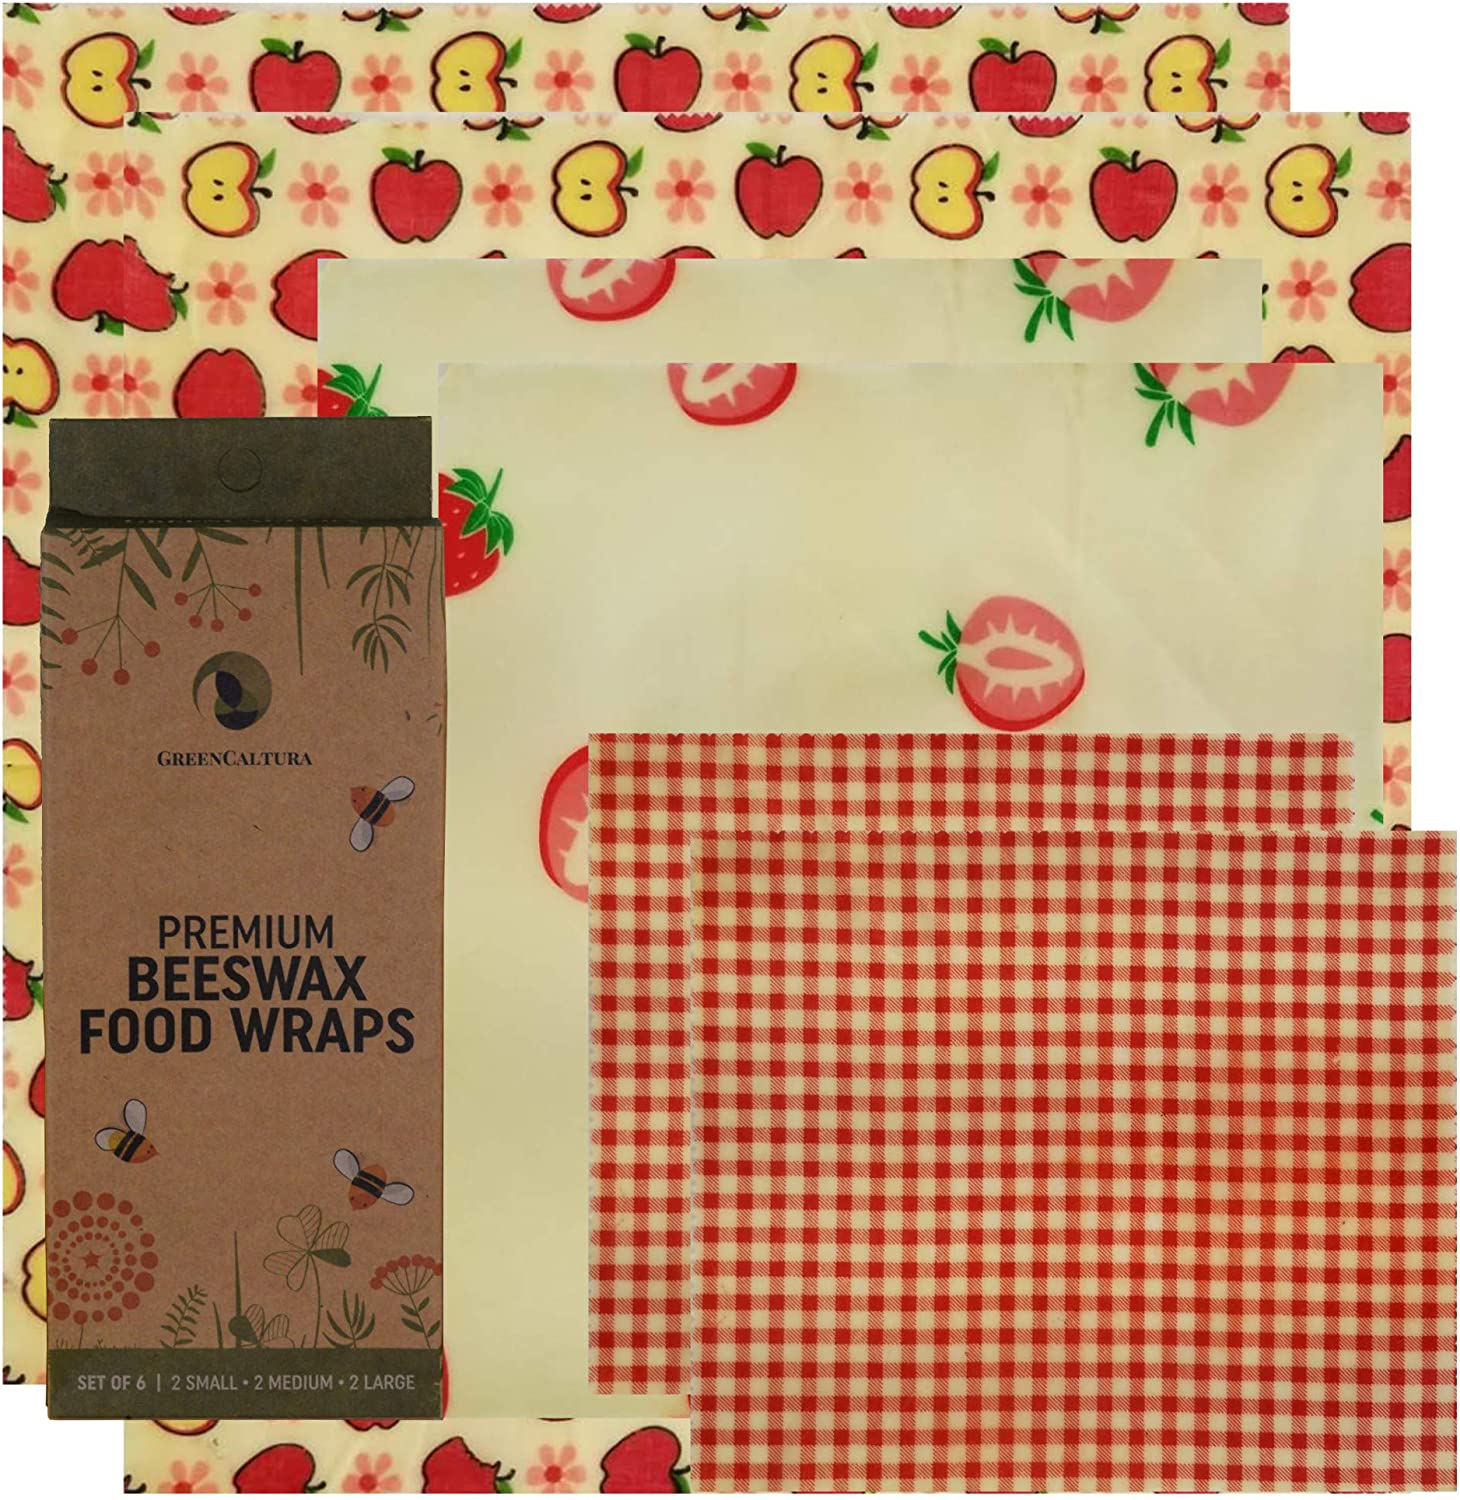 Beeswax Food Wrap - Organic Beeswax and GOTS Cotton - Reusable Food Storage - Eco Sustainable Replacement for Single Use Plastic (pink/red, 6)